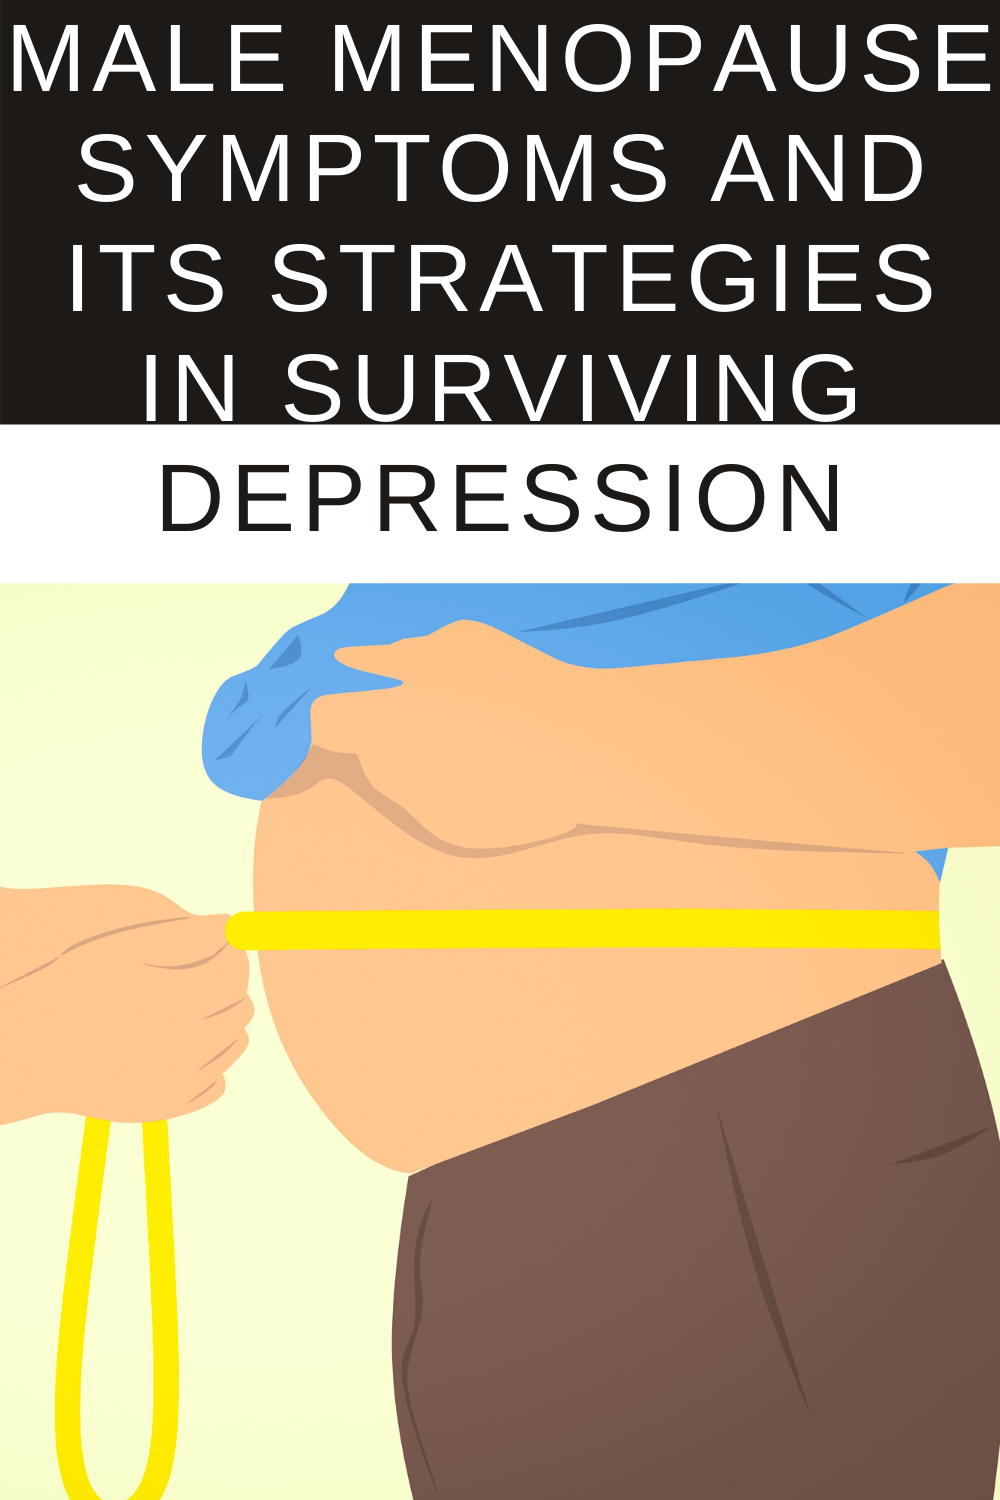 Male Menopause Symptoms and Its Strategies in Surviving Depression